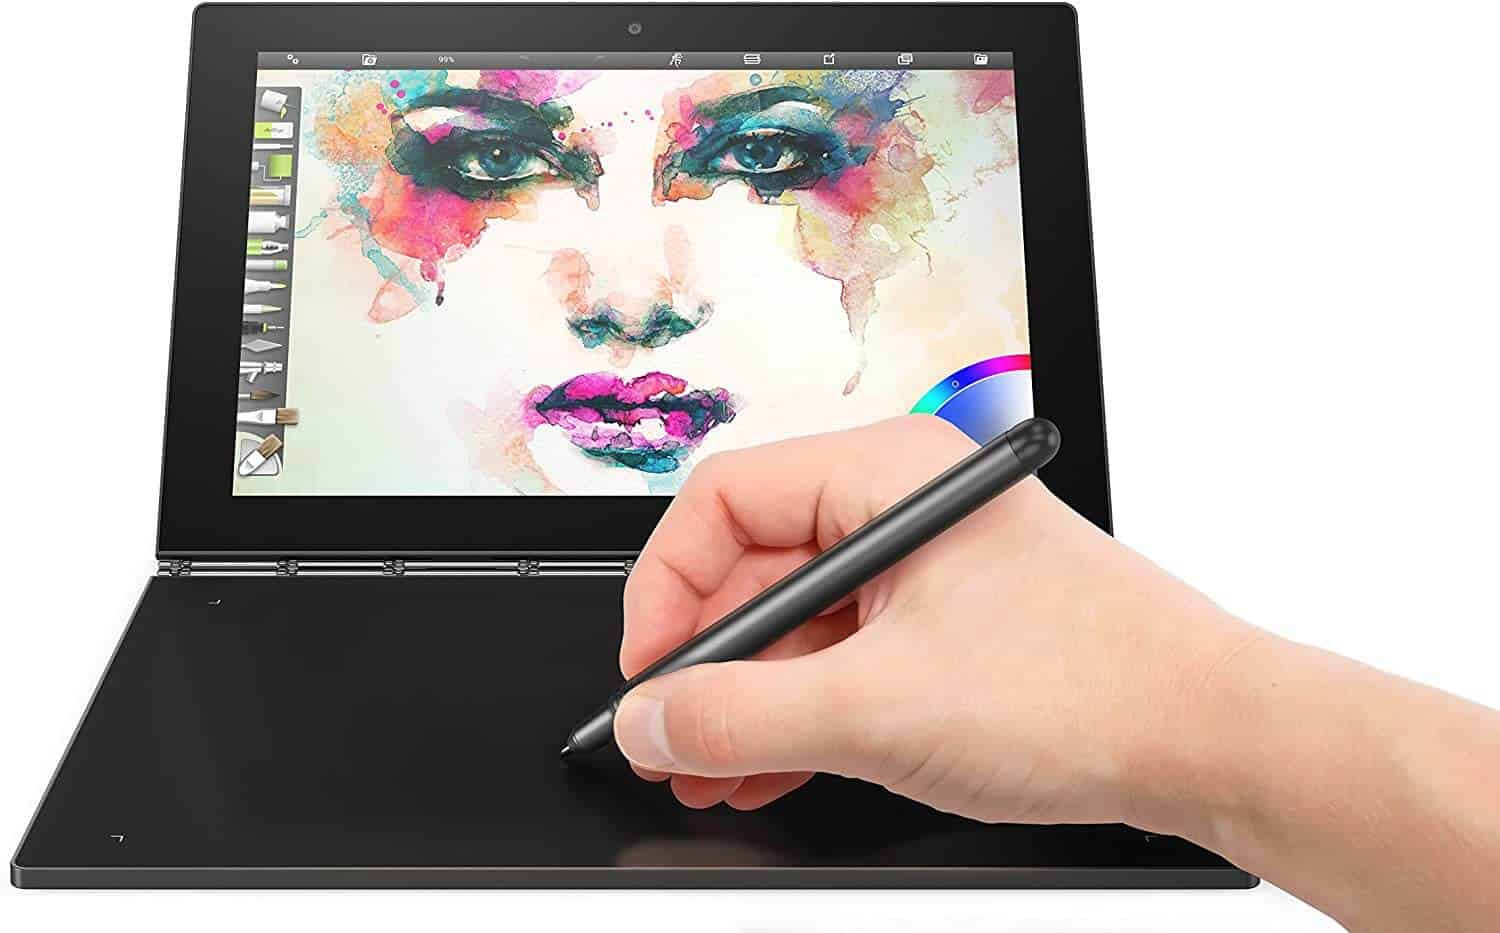 Lenovo Yoga Book 2 in 1 Tablet - Best NoteBook Tablet PC For Students